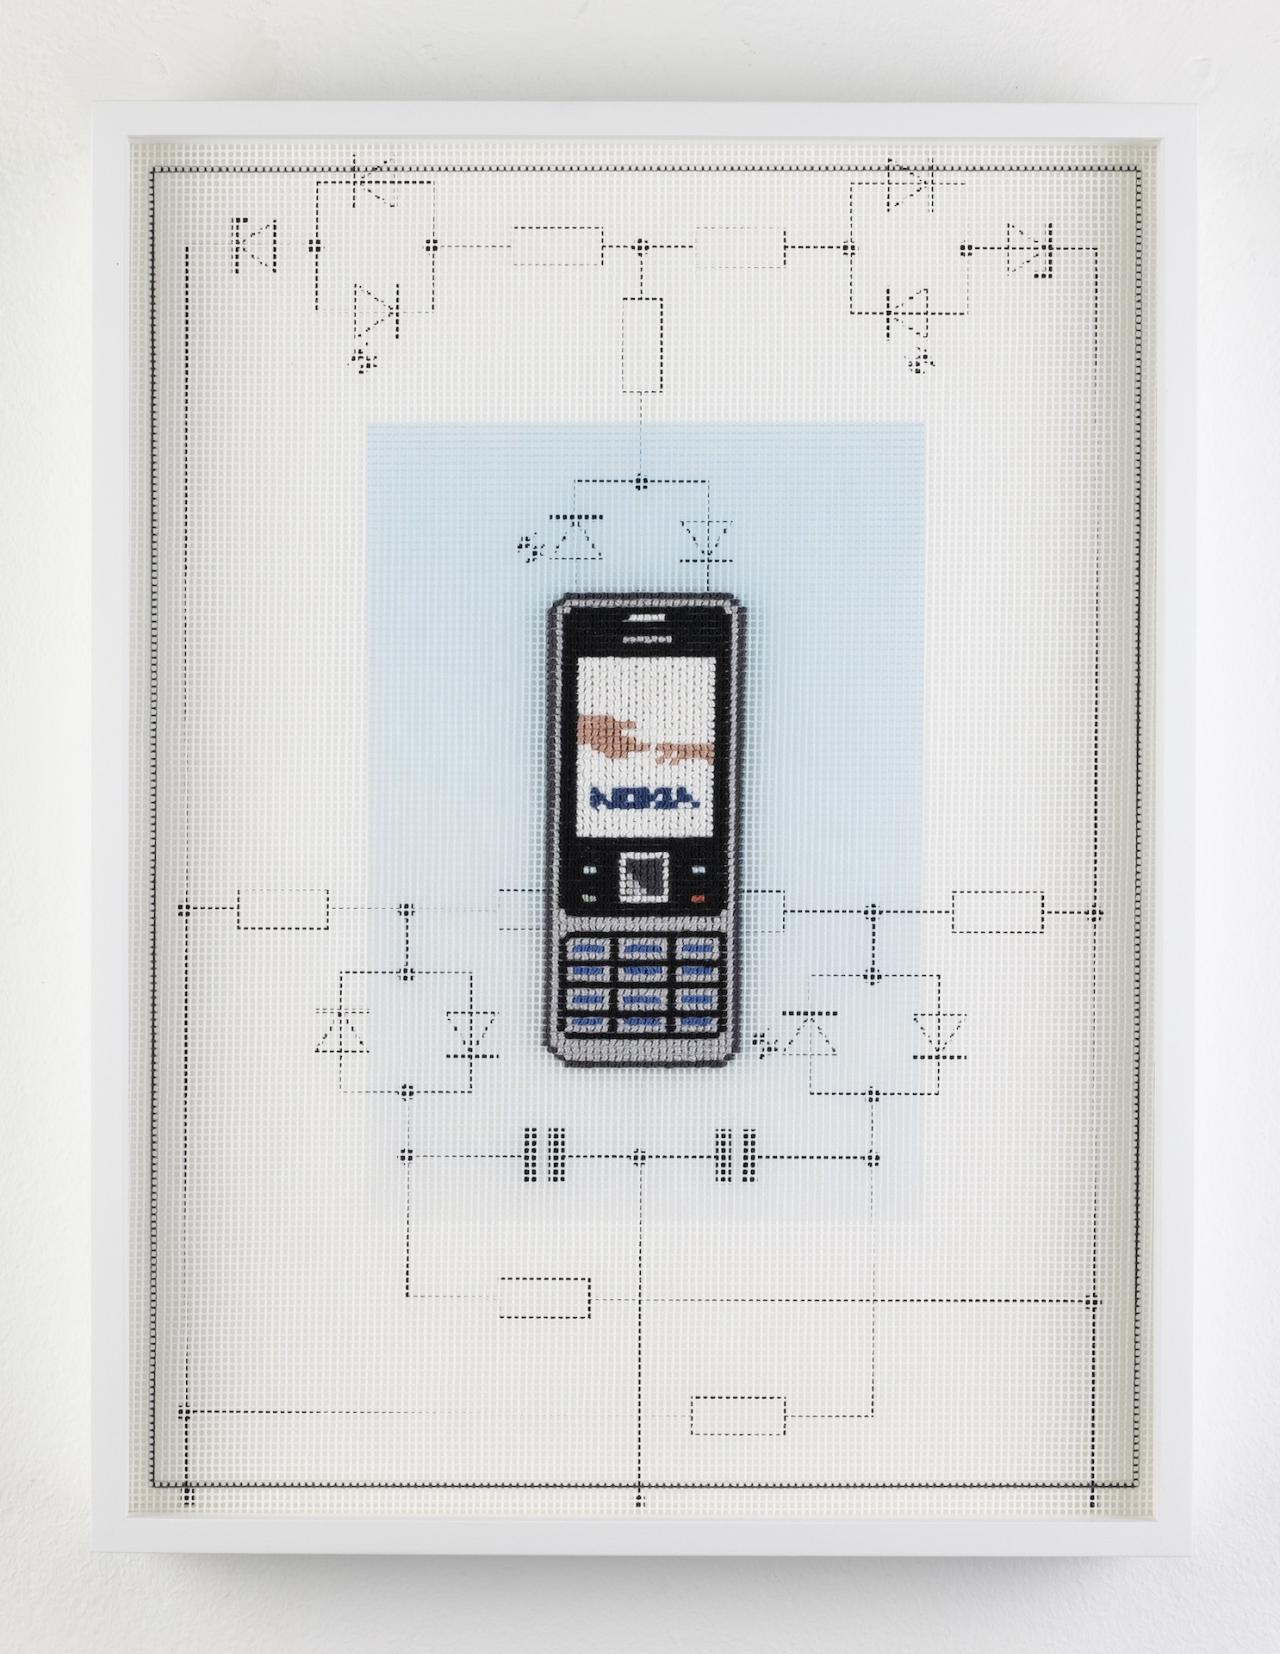 """Lilly Lulay, Nokia 6000 Cellphone (2007) (2020). From the series """"Early Digital Tech"""". Photo: Thomas Bruns. Courtesy of gallery Kuckei + Kuckei and Galerie Klüser, Munich"""